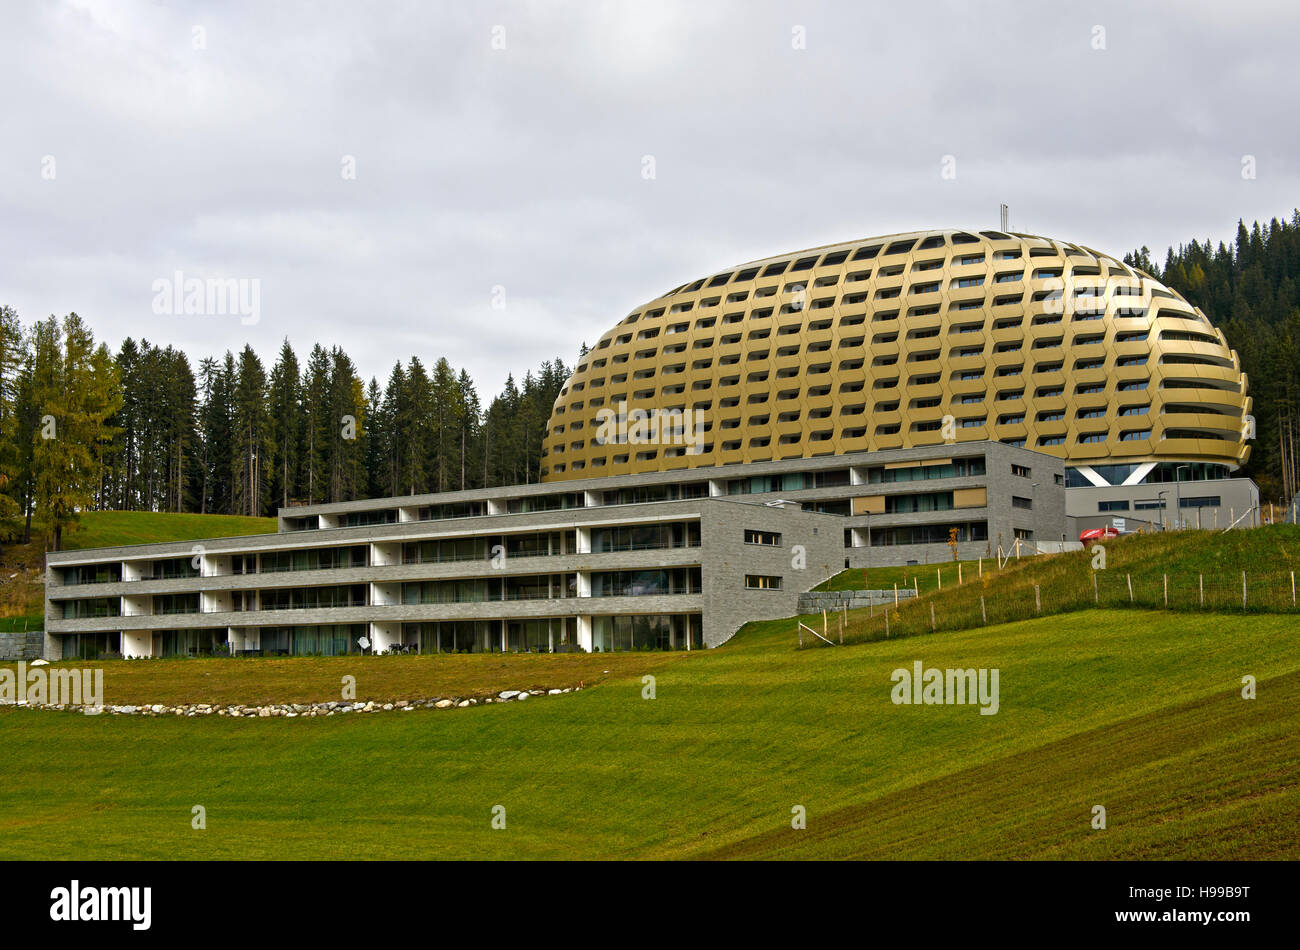 InterContinental Davos Hotel, Davos, Grisons, Switzerland - Stock Image